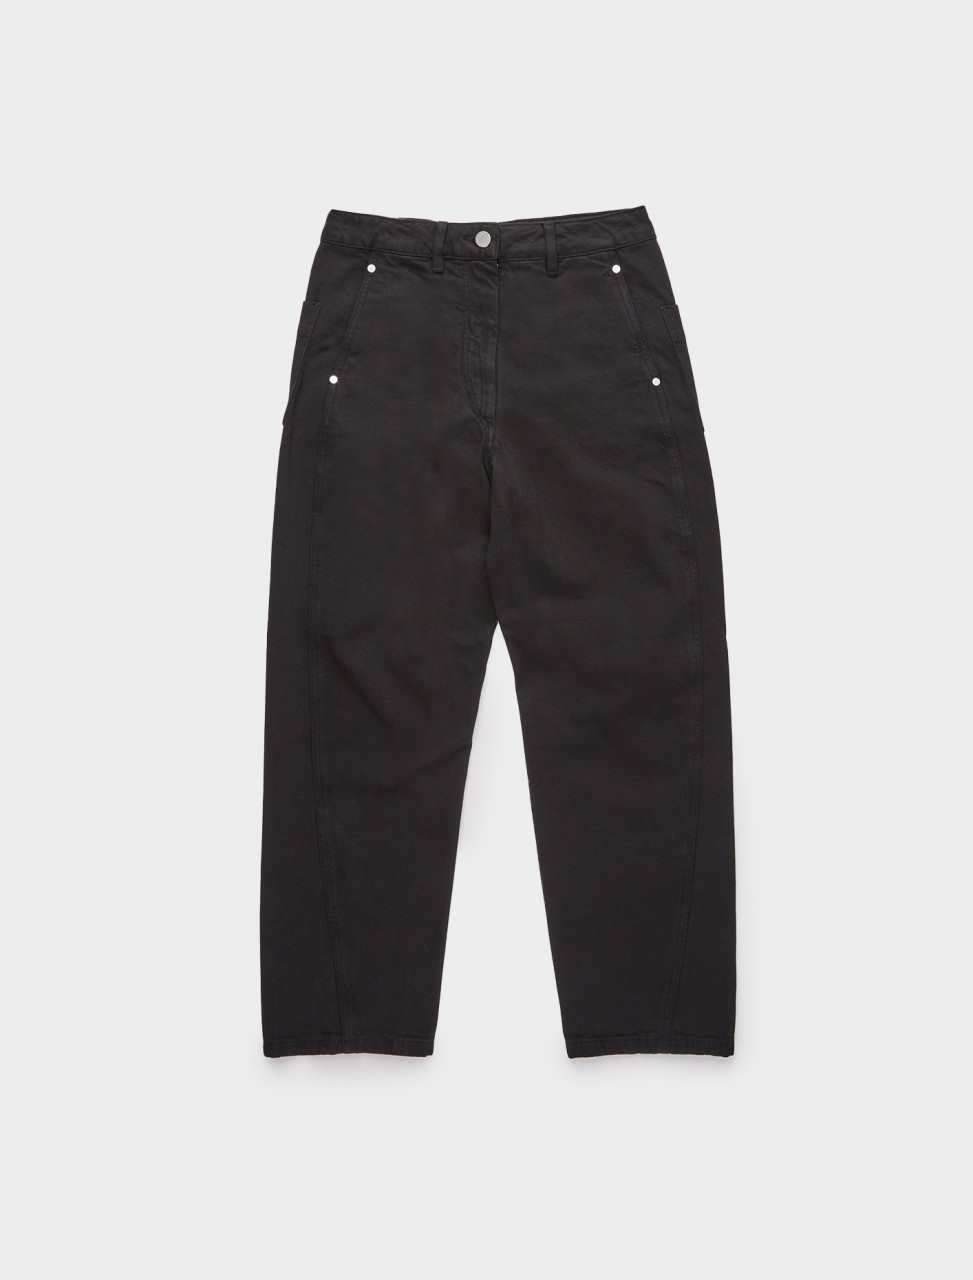 218-W-203-PA220-LD034-999 LEMAIRE TWISTED TROUSERS BLACK